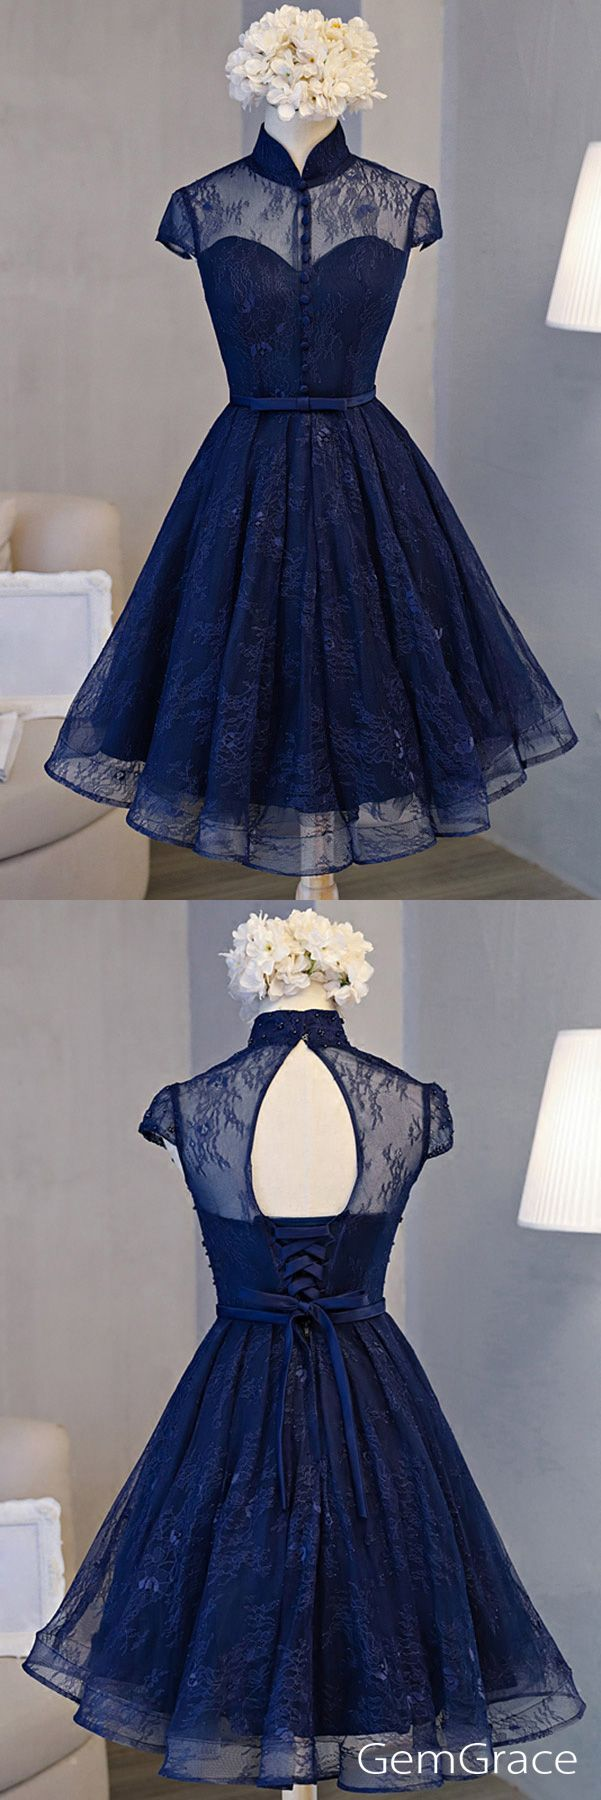 Navy blue special high neck party prom dress fancy frilly formal